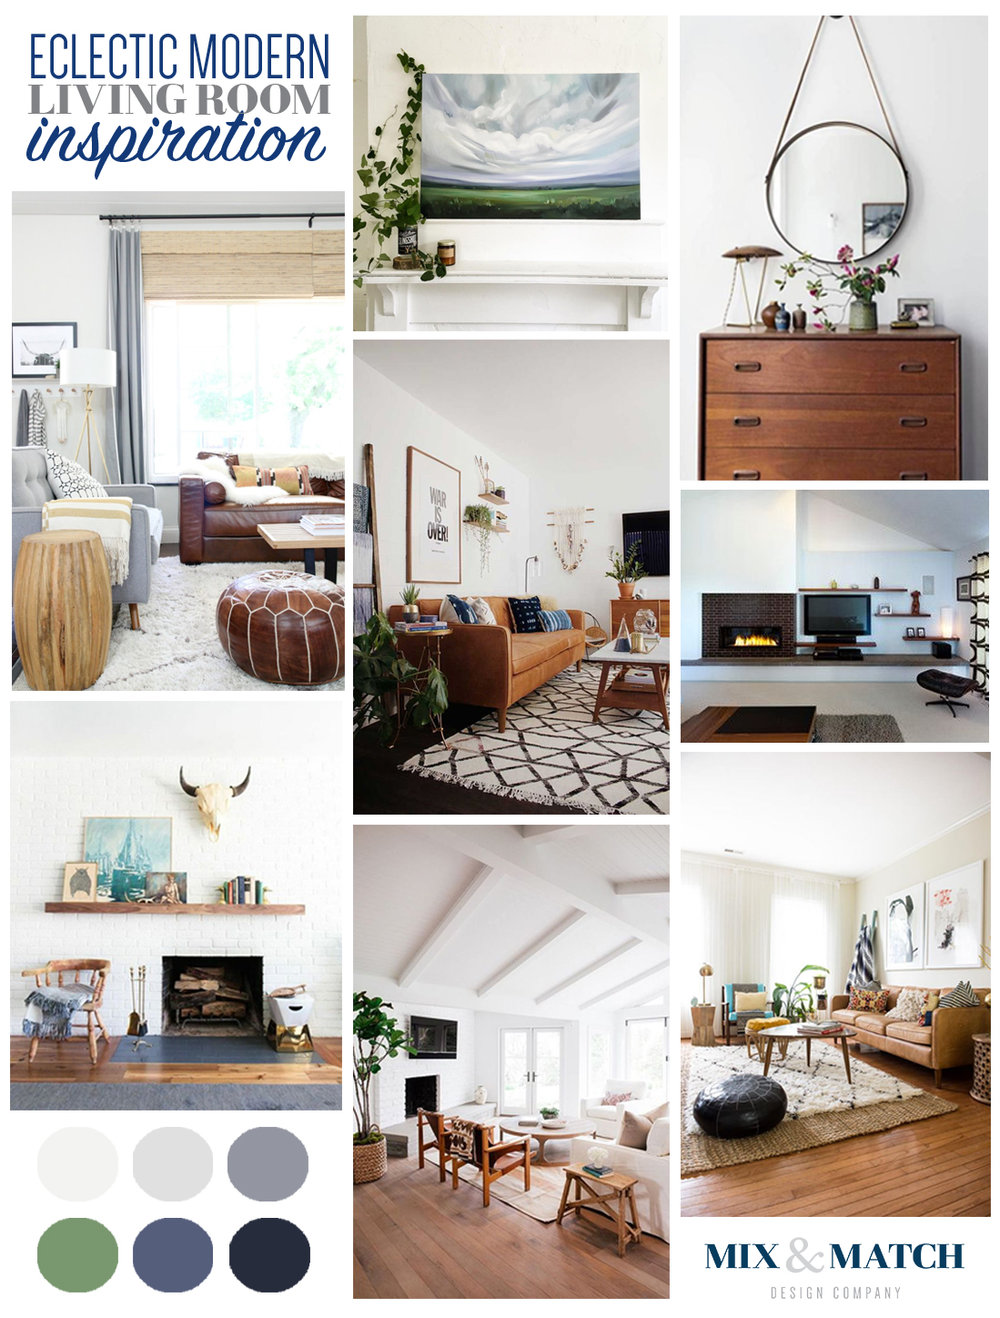 Eclectic Modern Living Room Inspiration Board